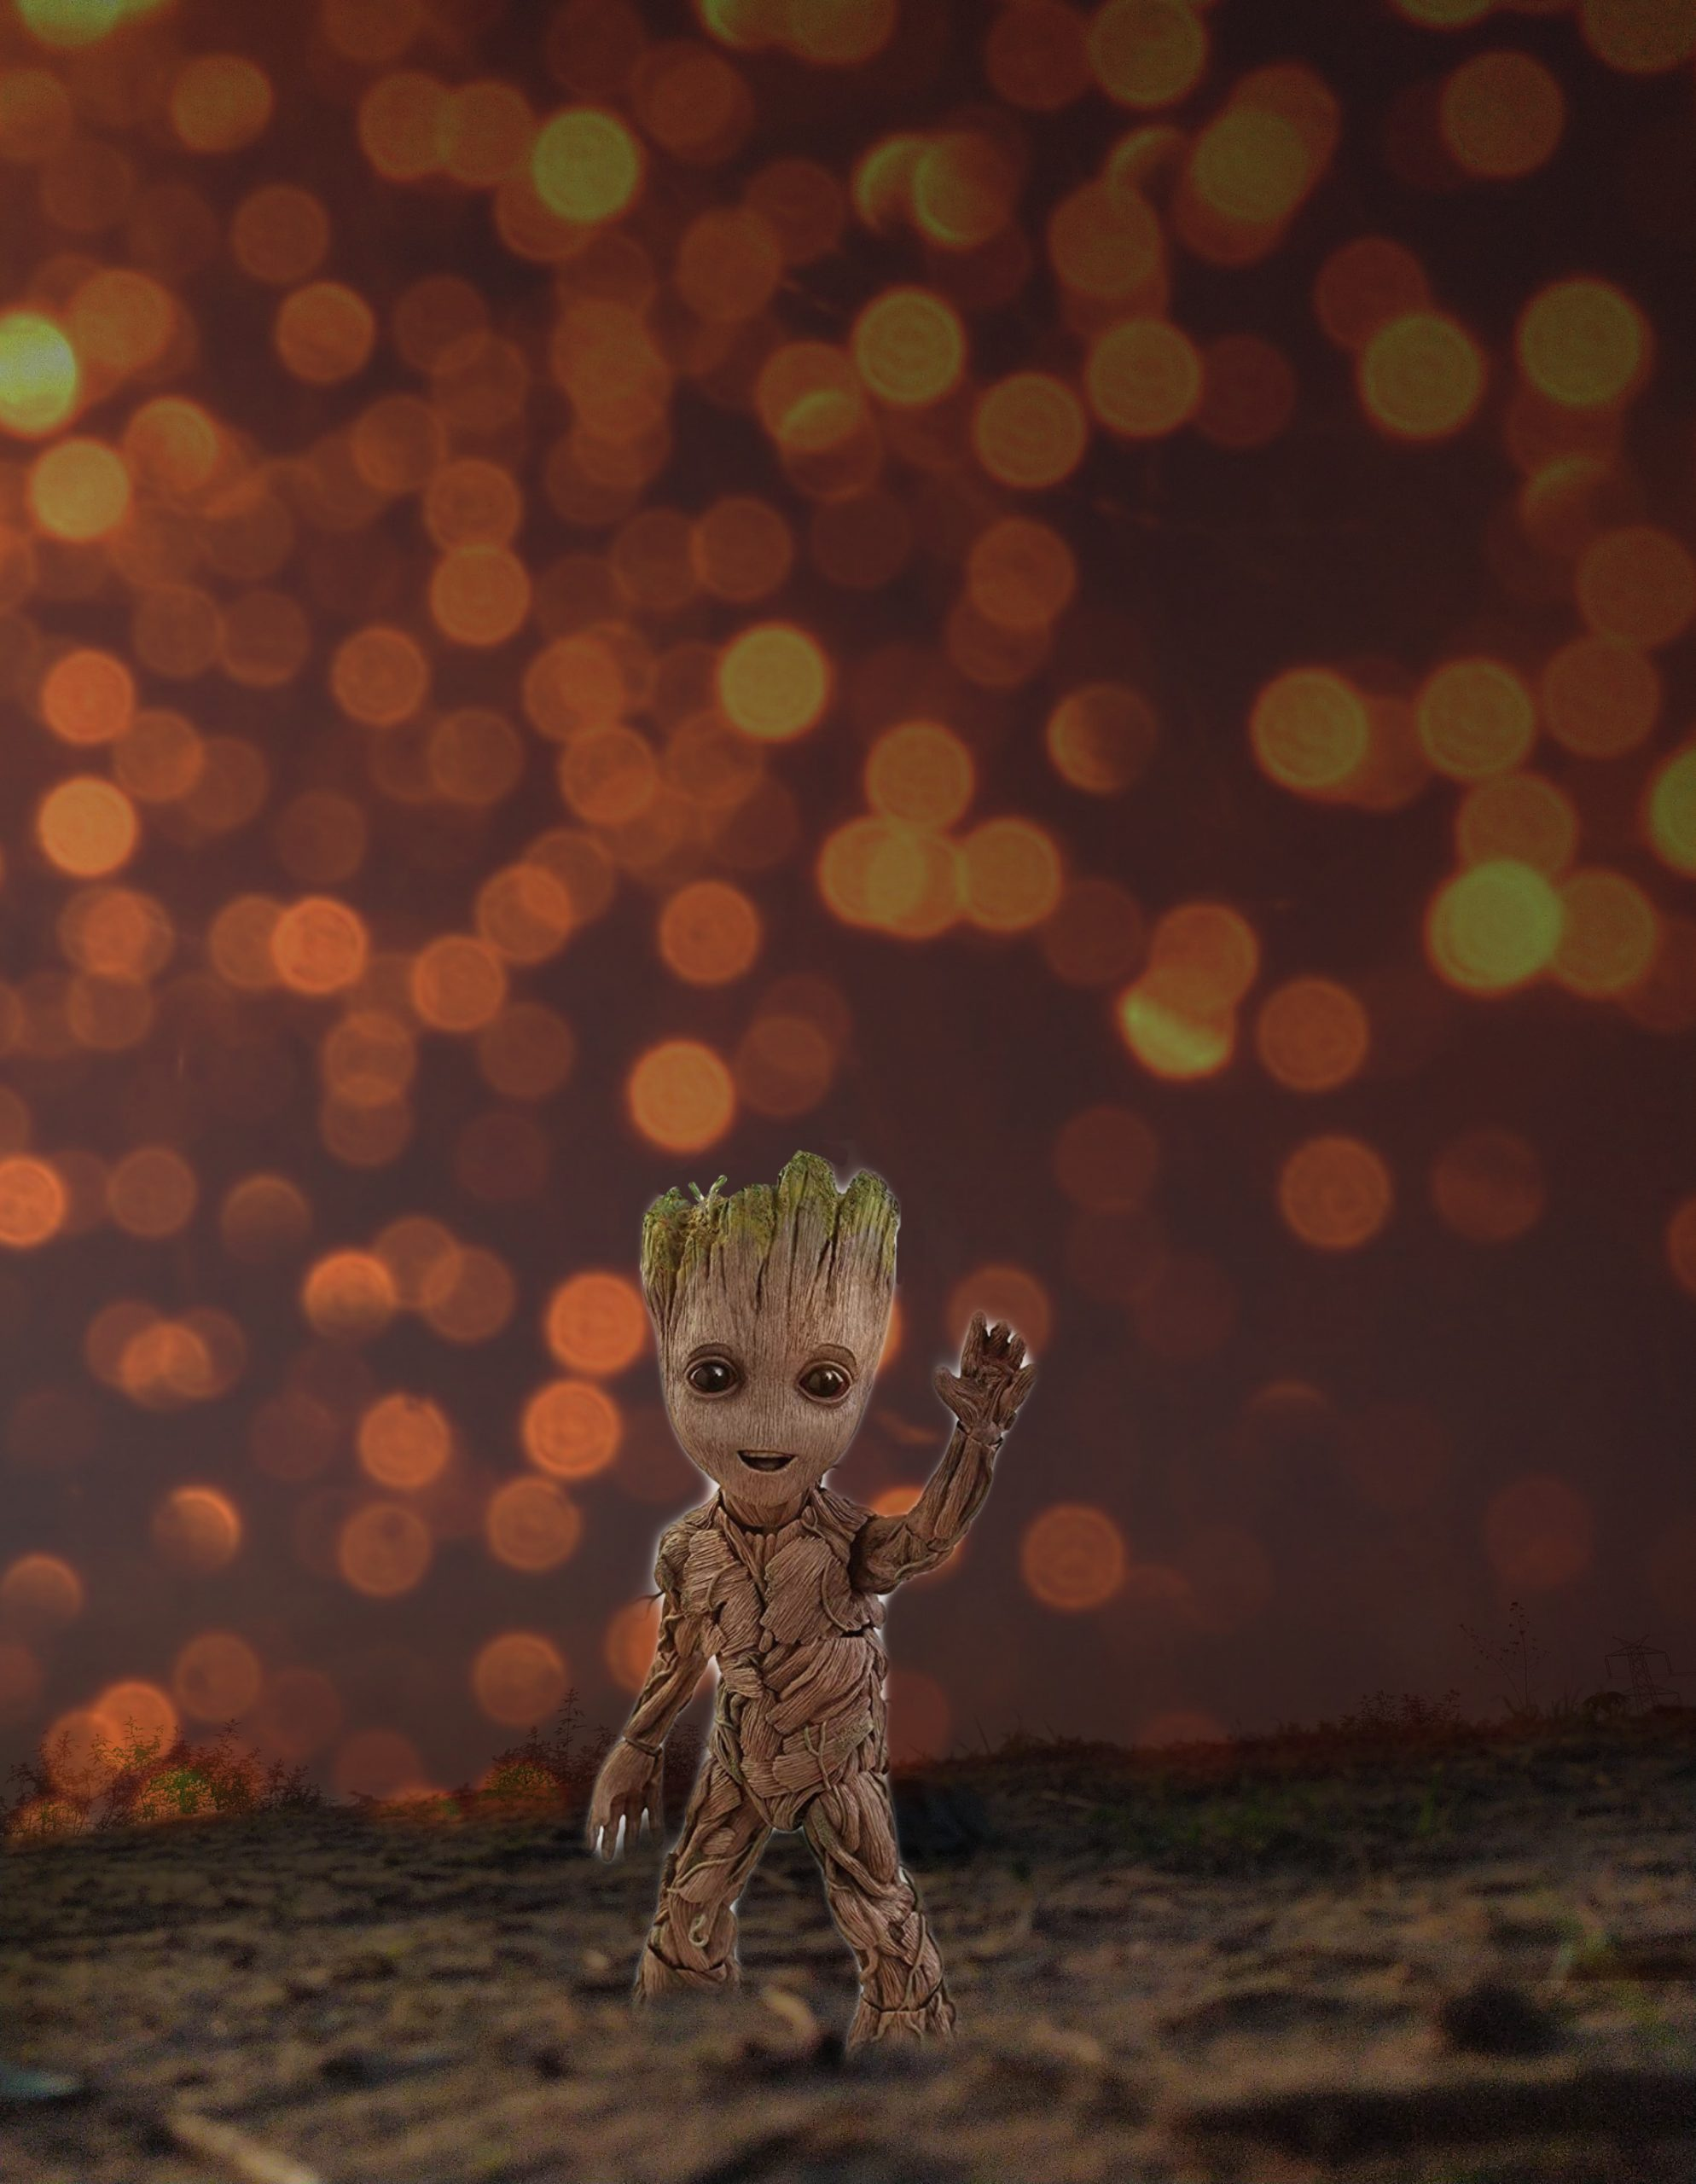 Fictional character Groot